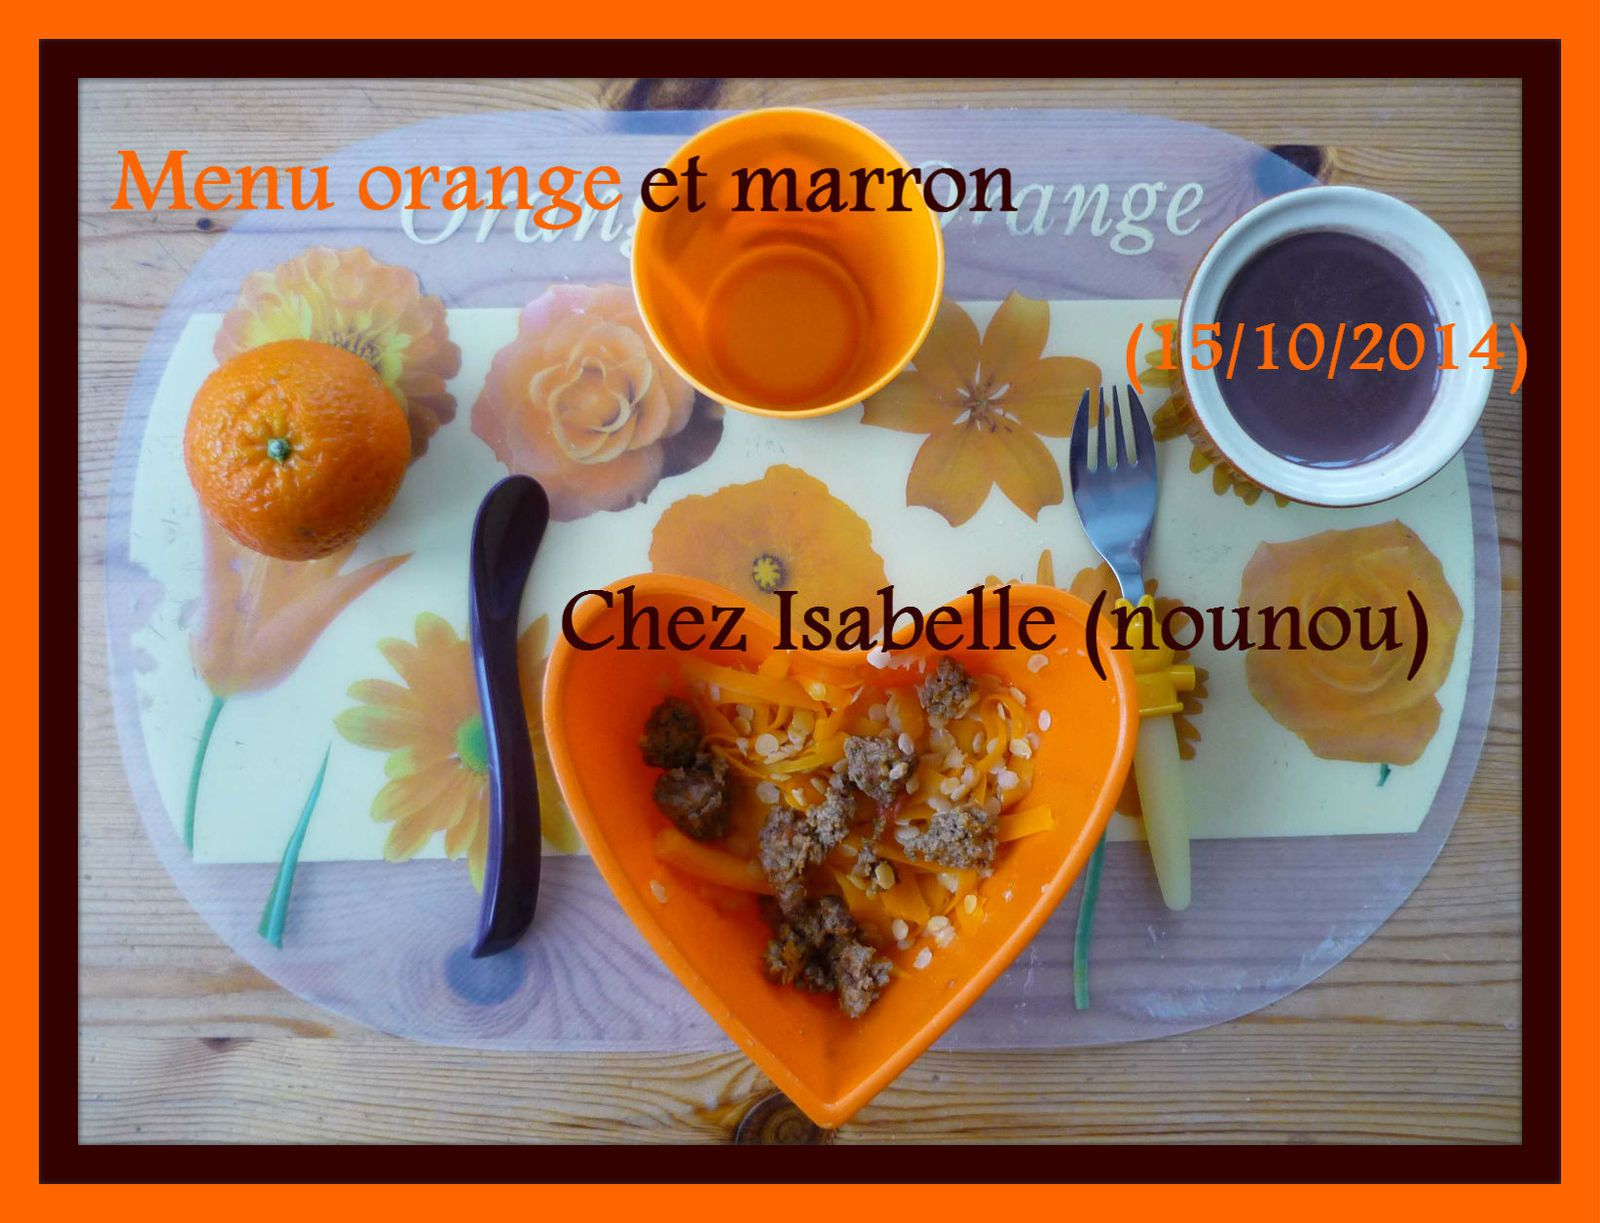 Menu Orange / Marron  (15/10/2014)